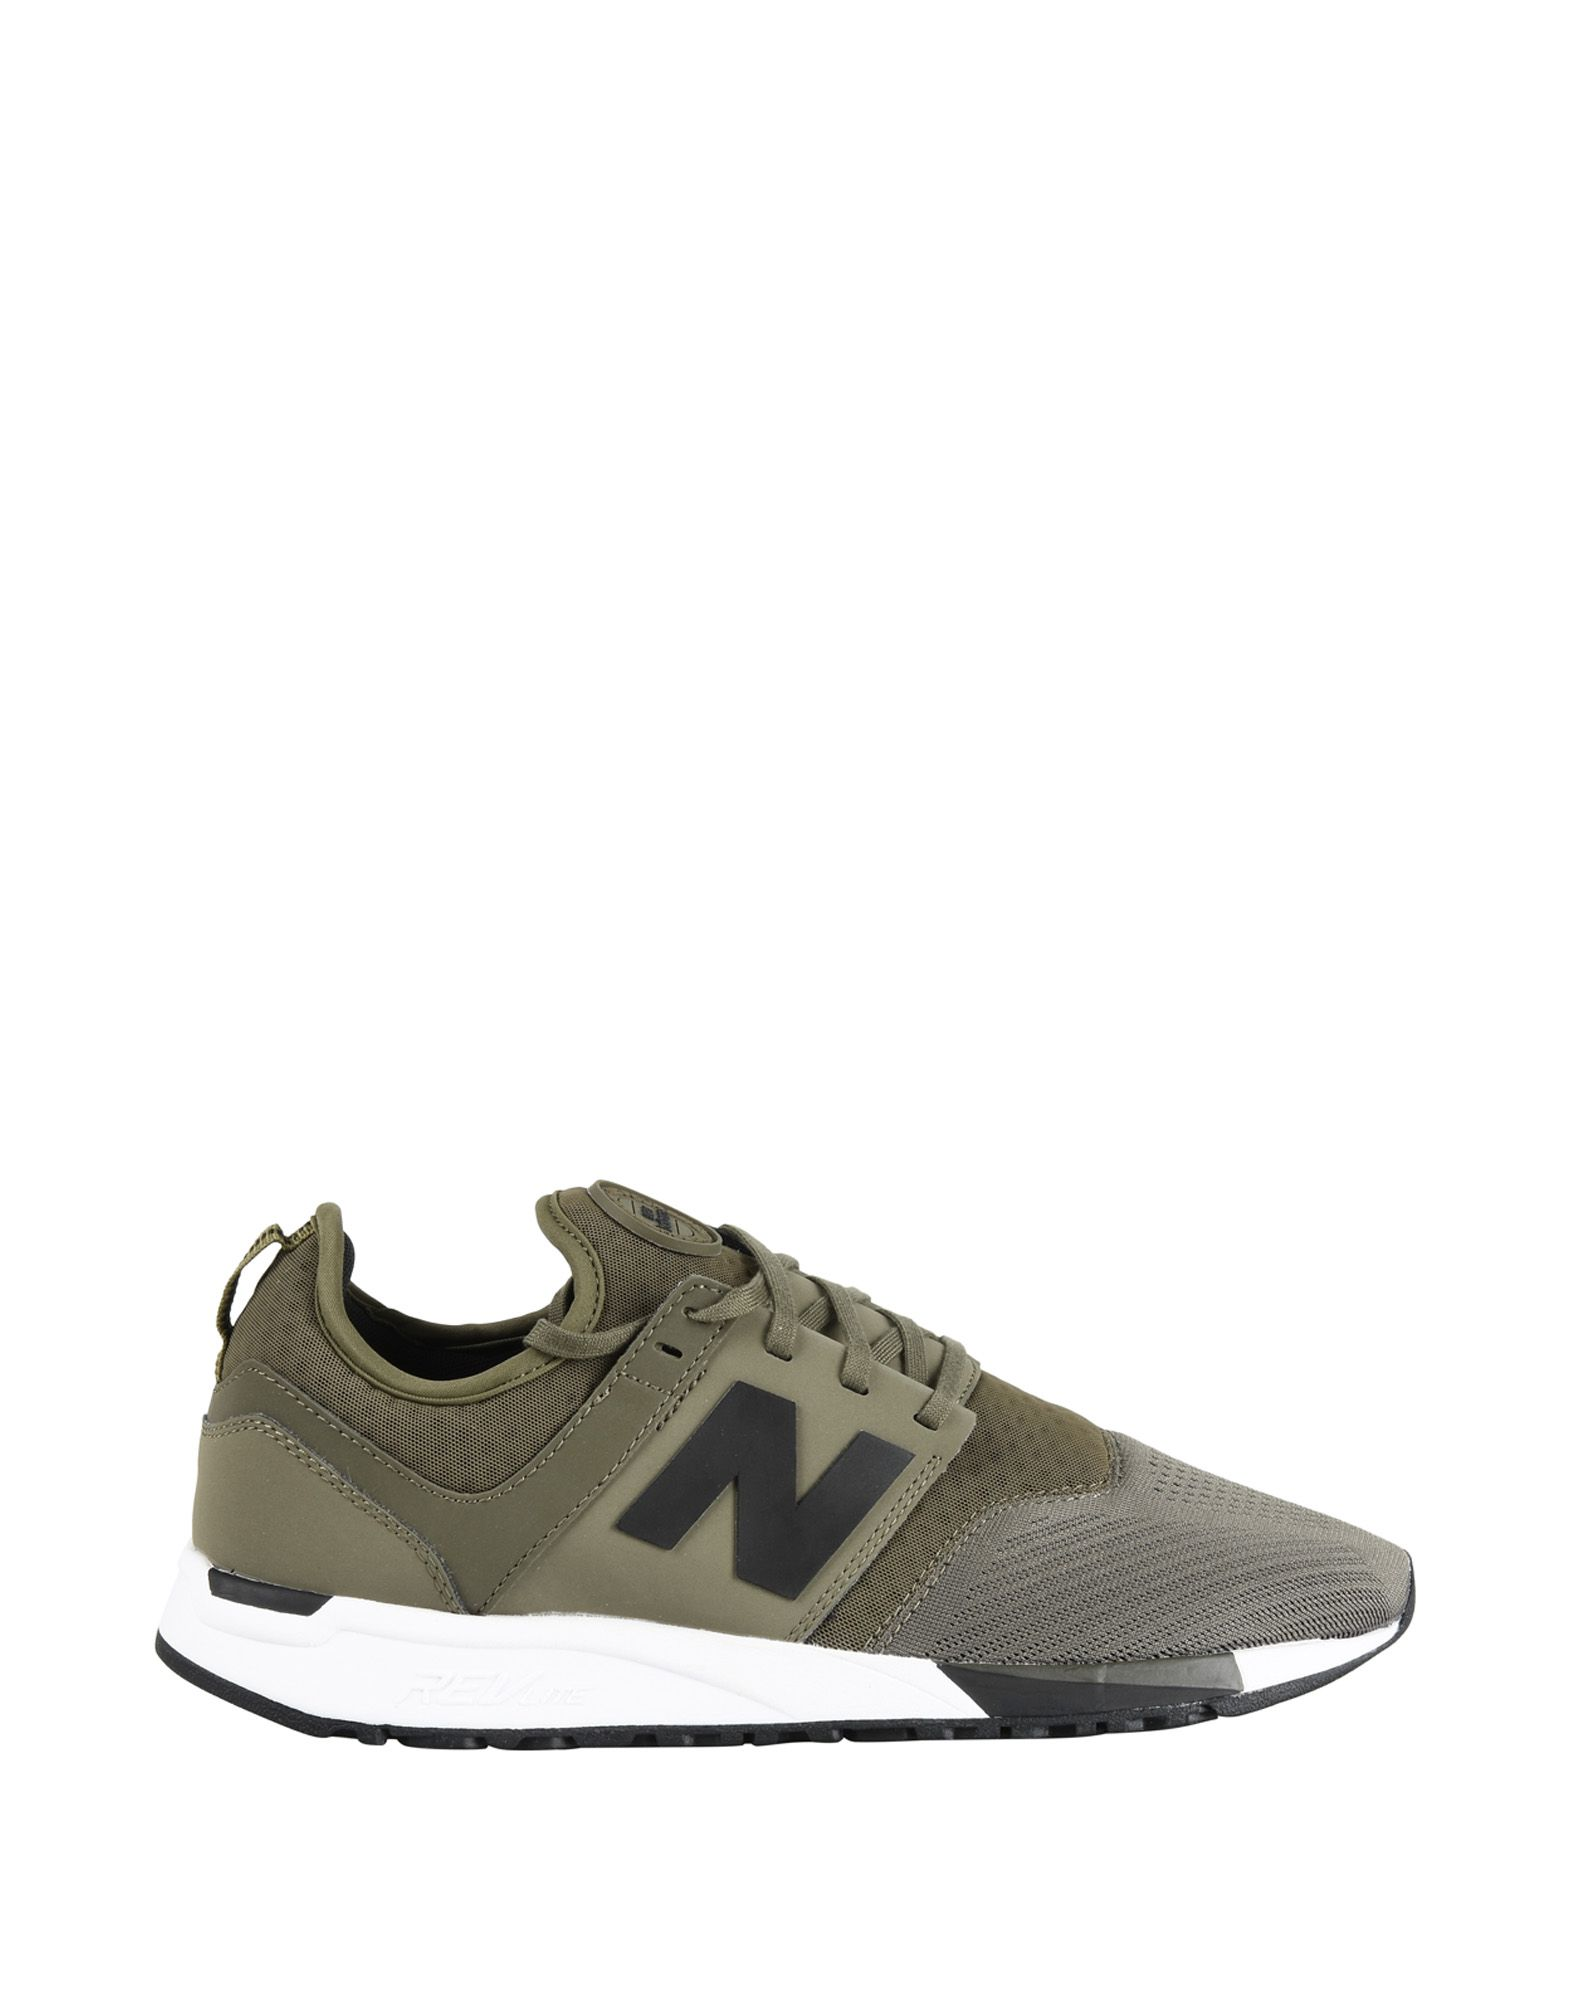 Sneakers New Balance 247 Sport - Homme - Sneakers New Balance sur